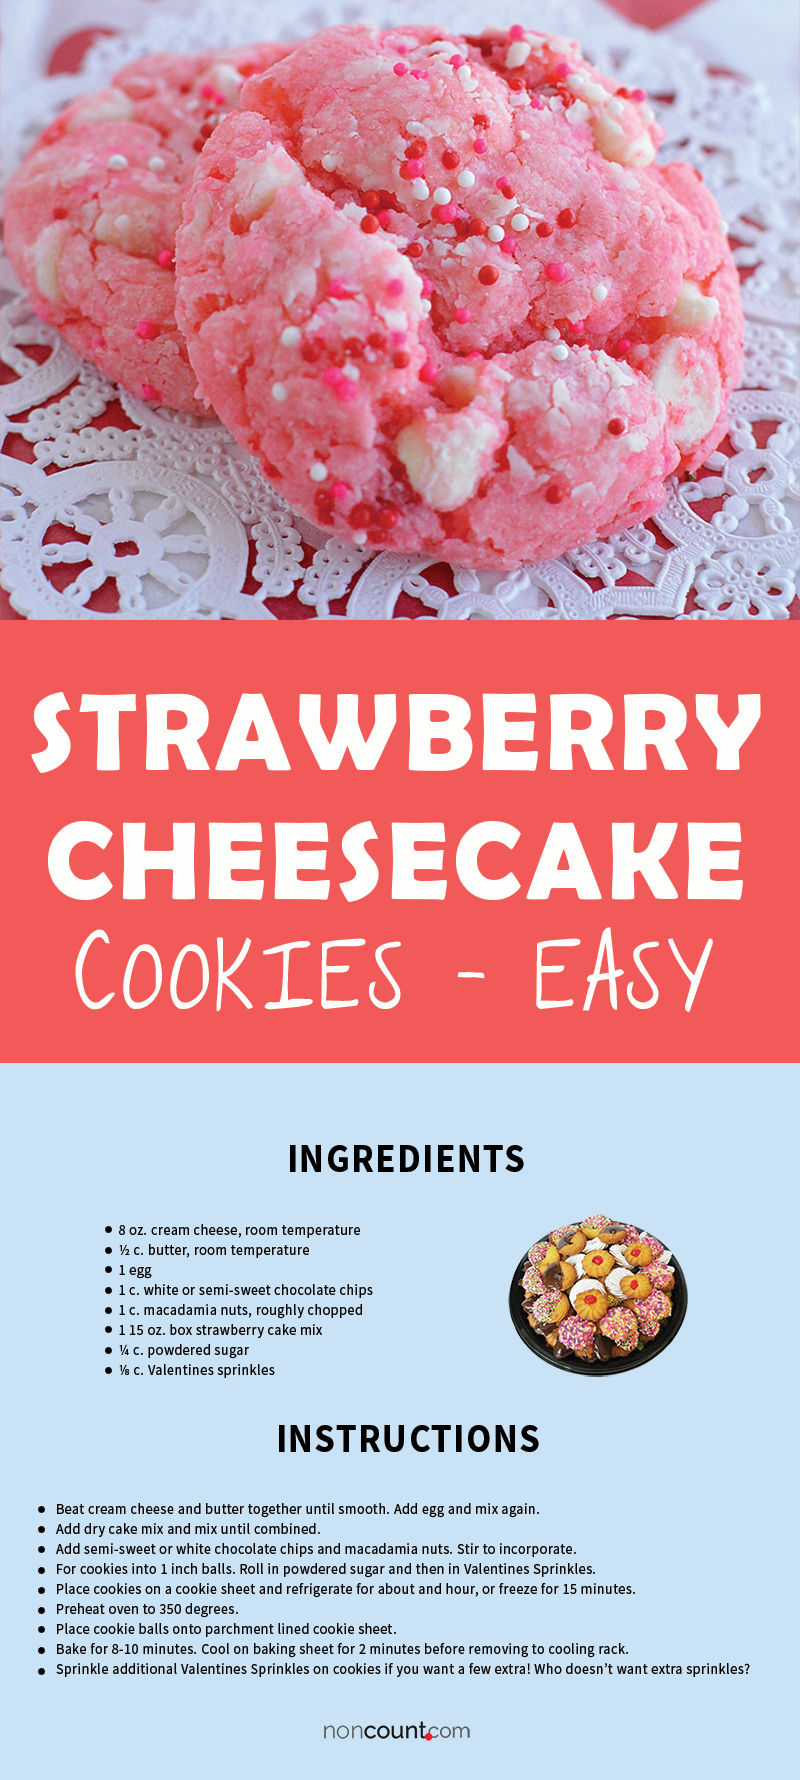 Recipe Image of Strawberry Cheesecake Cookies – Easy